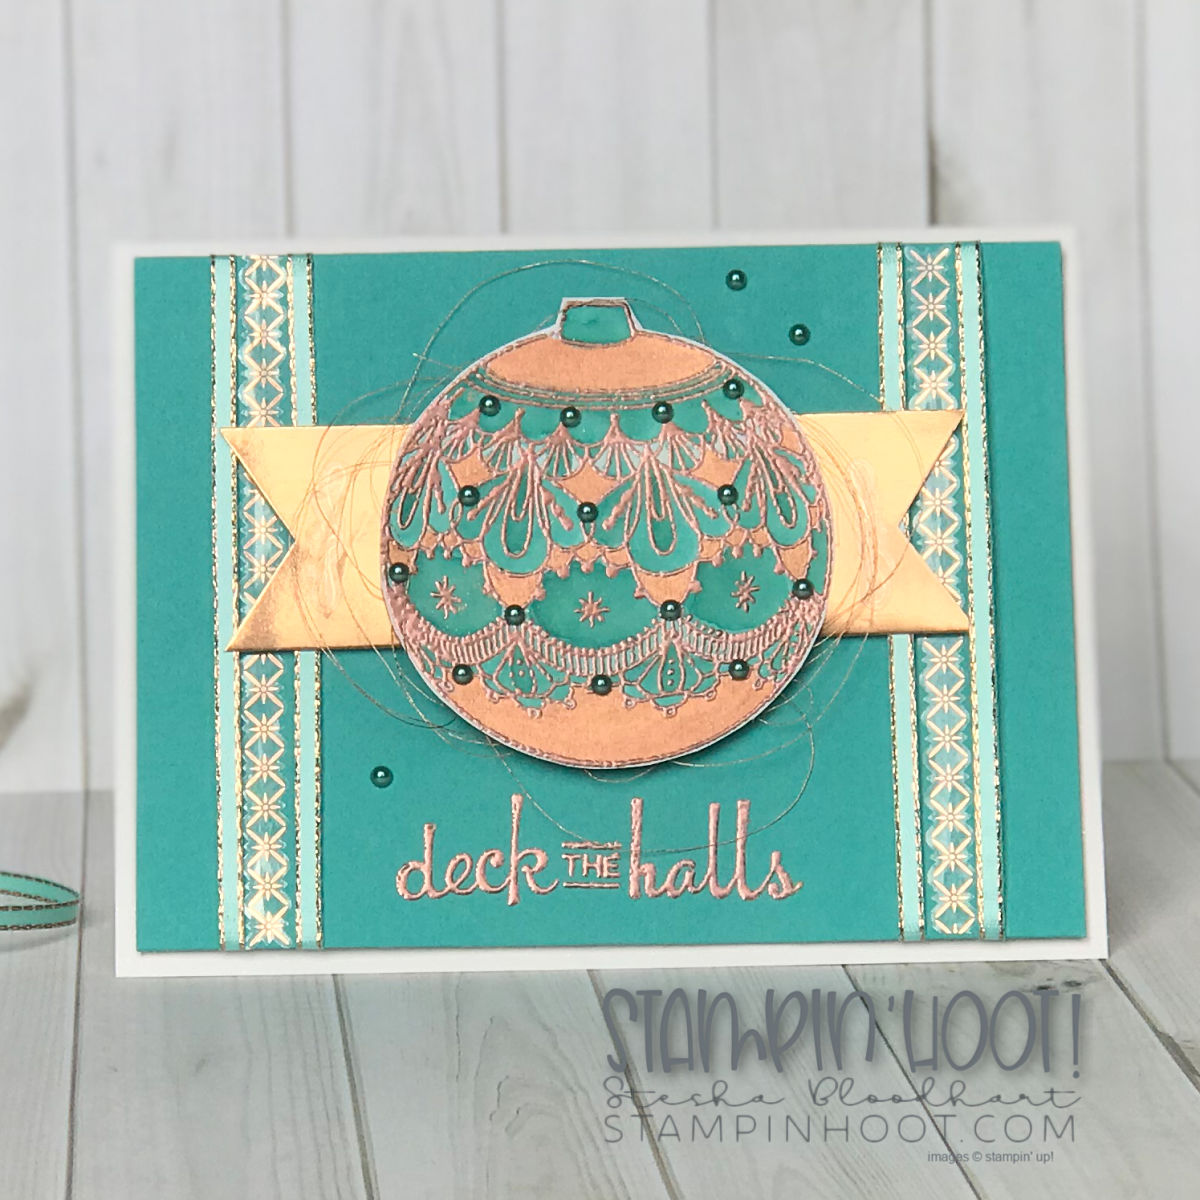 Beautiful Baubles Bundle by Stampin' Up! for #tgifc177 Sketch Challenge, Christmas Card created by Stesha Bloodhart, Stampin' Hoot! #steshabloodhart #stampinhoot